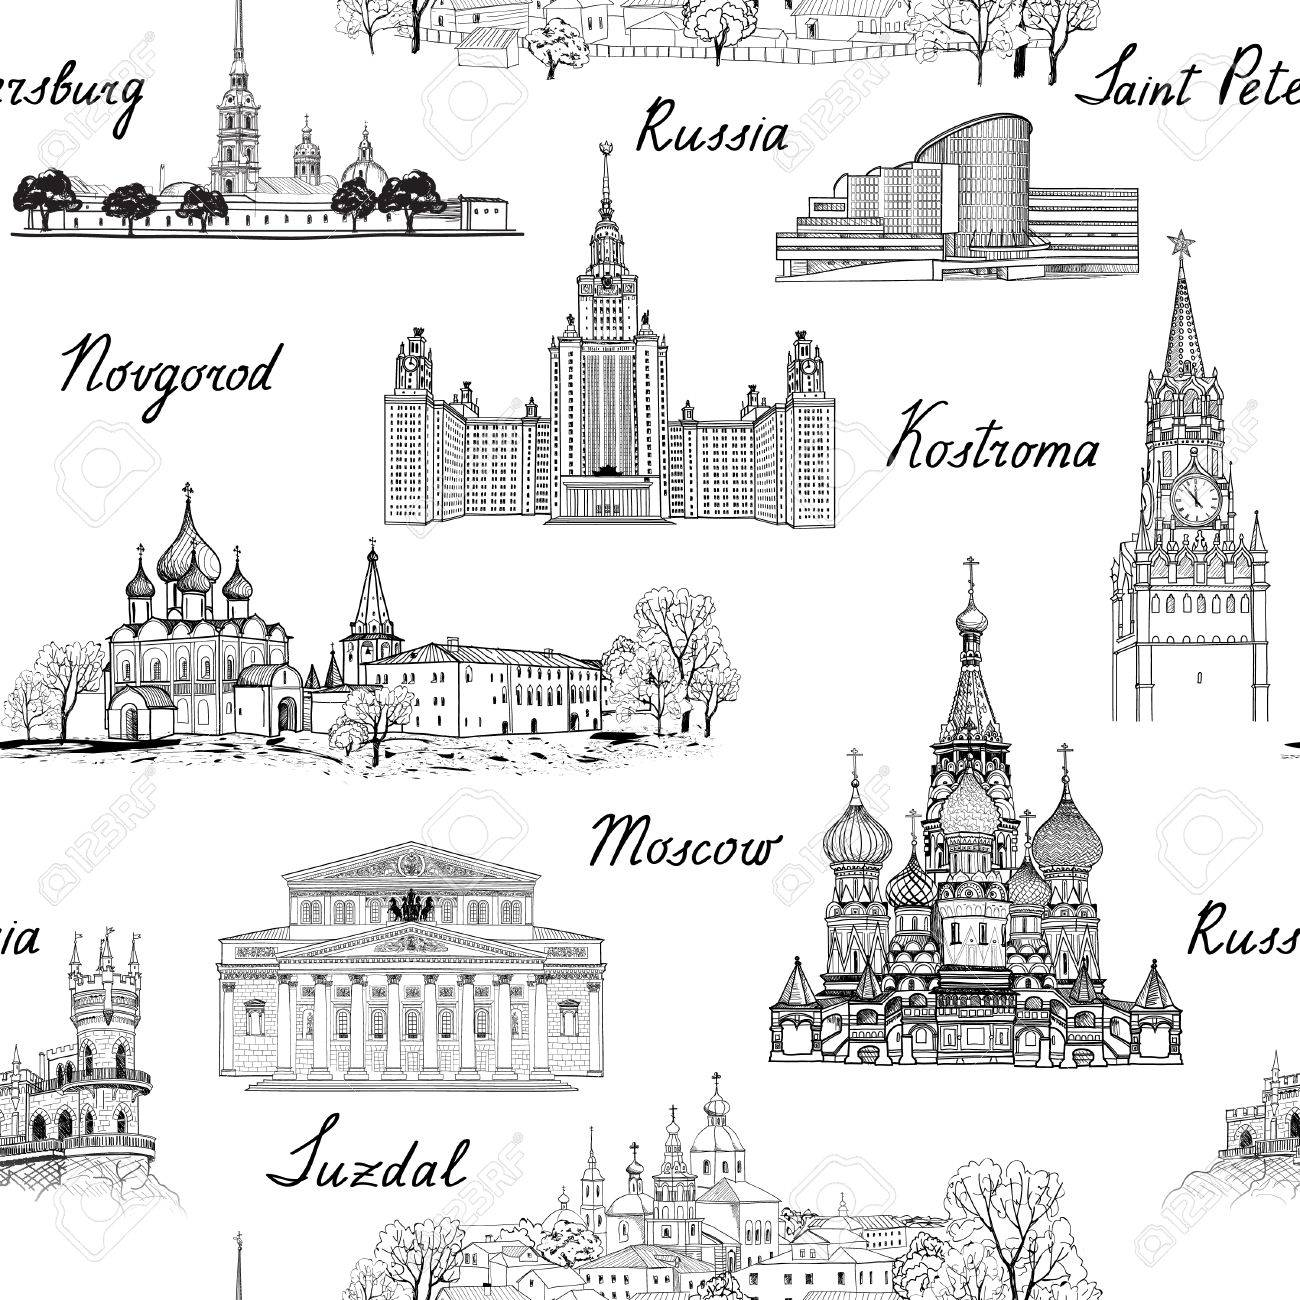 Travel Russia seamless engraved architectural pattern. Famous Russian cities and monuments. Landmarks of Moscow, Saint Petersburg, Suzdal, Kolomna and other russian cities. Travel background. - 53120403